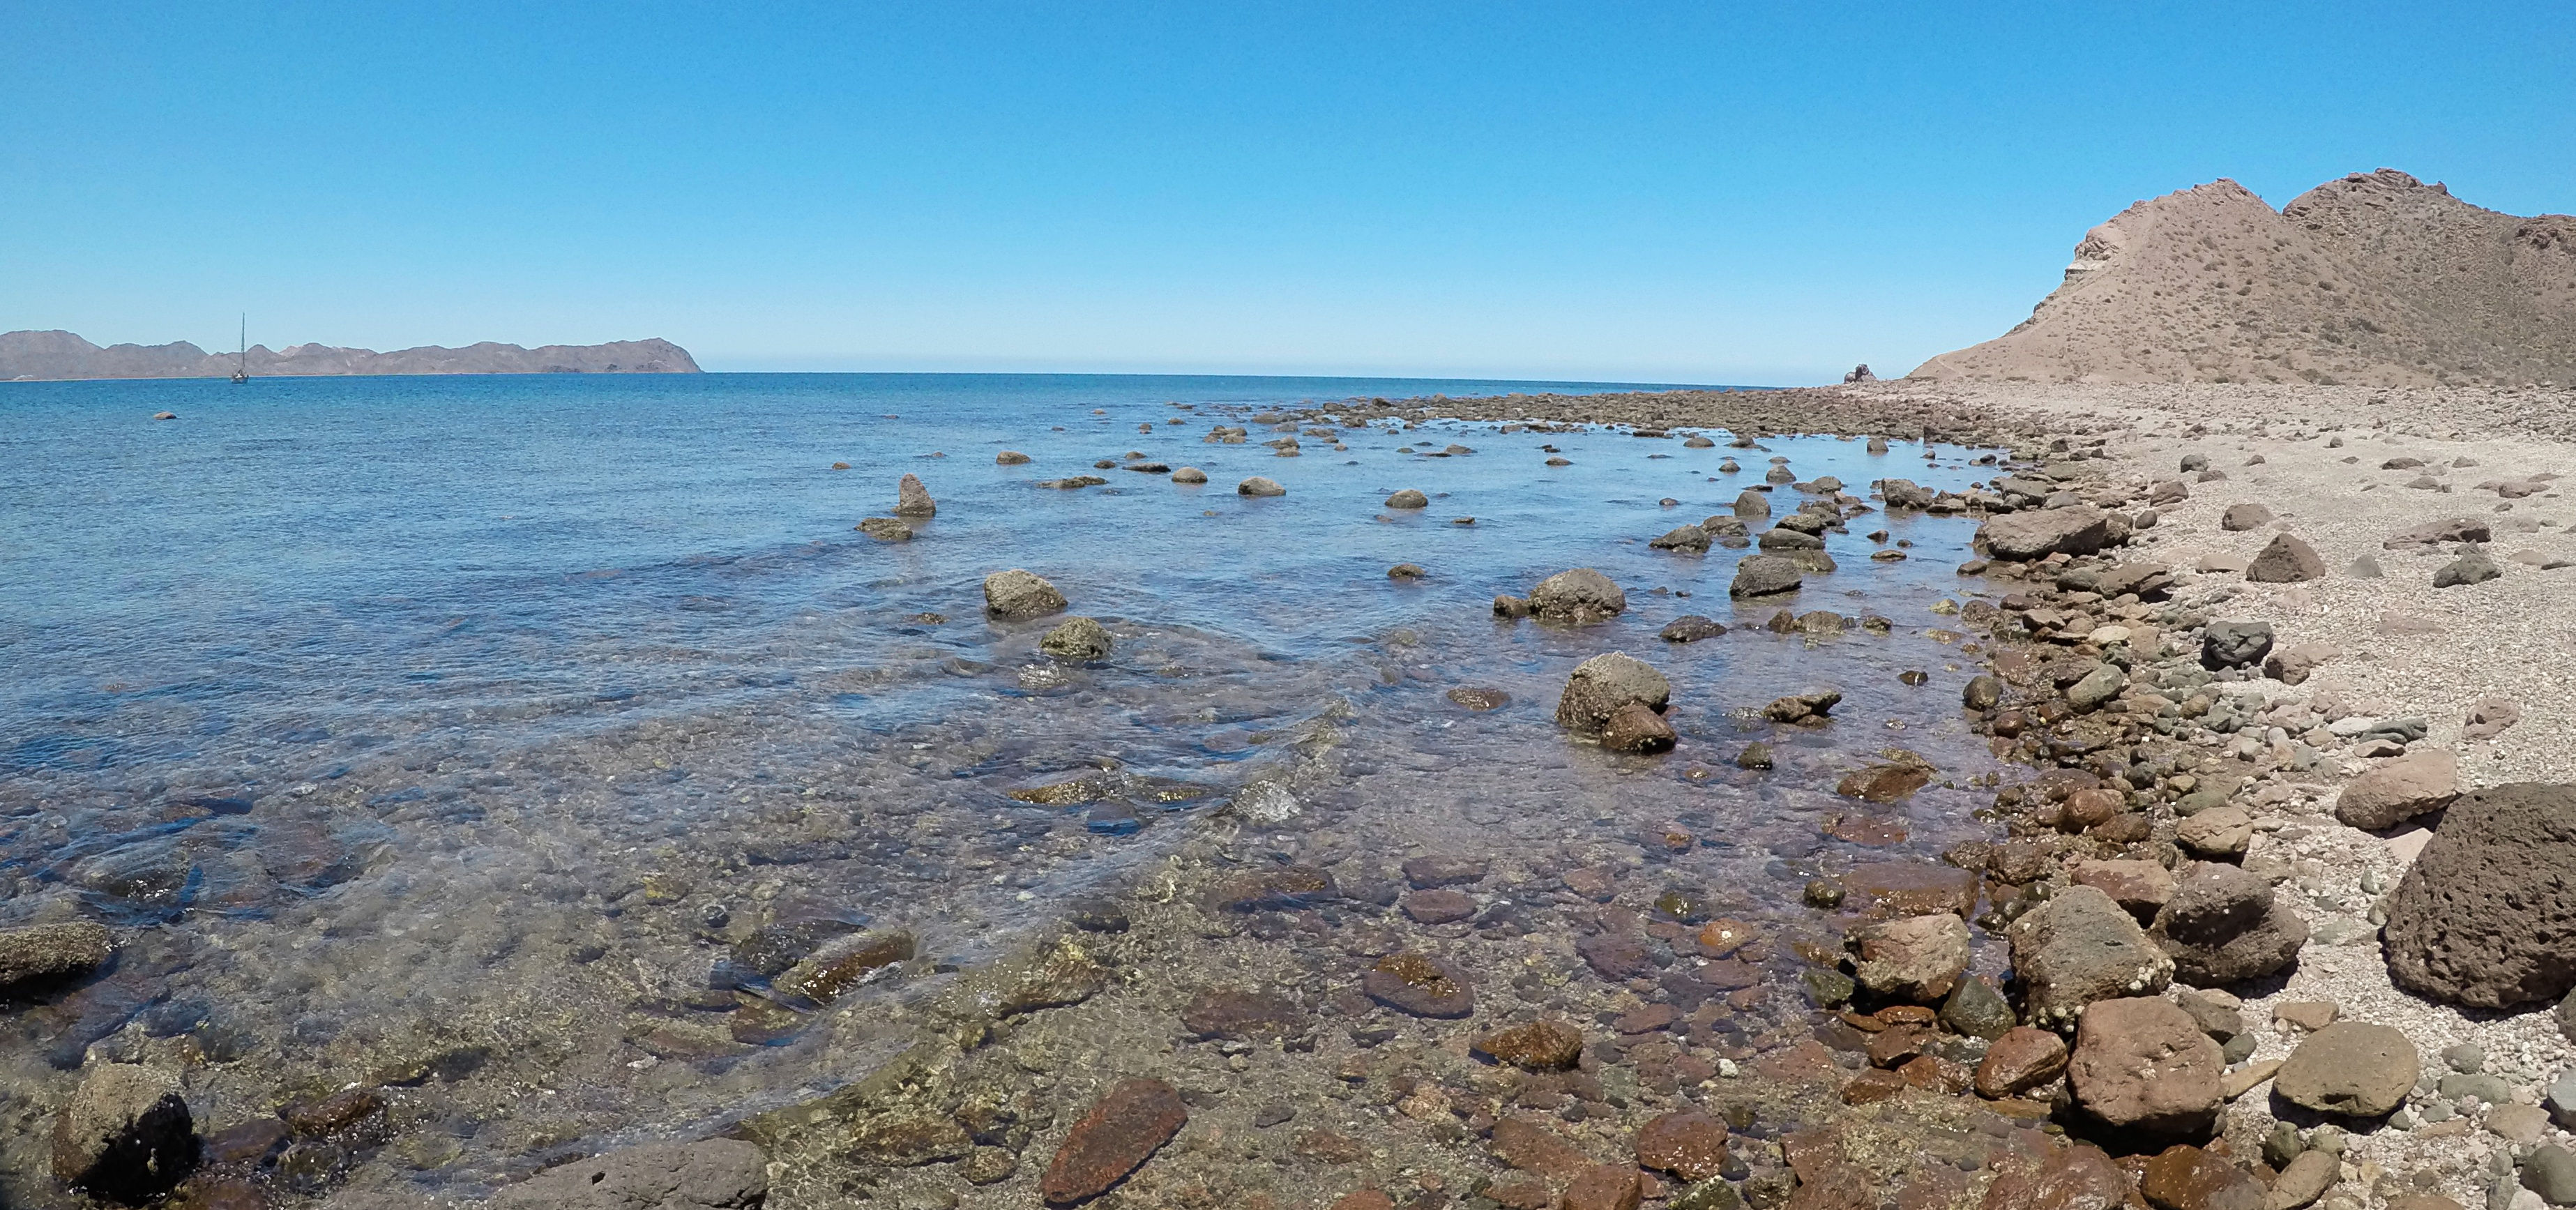 The rocky beach on the east side of the island.